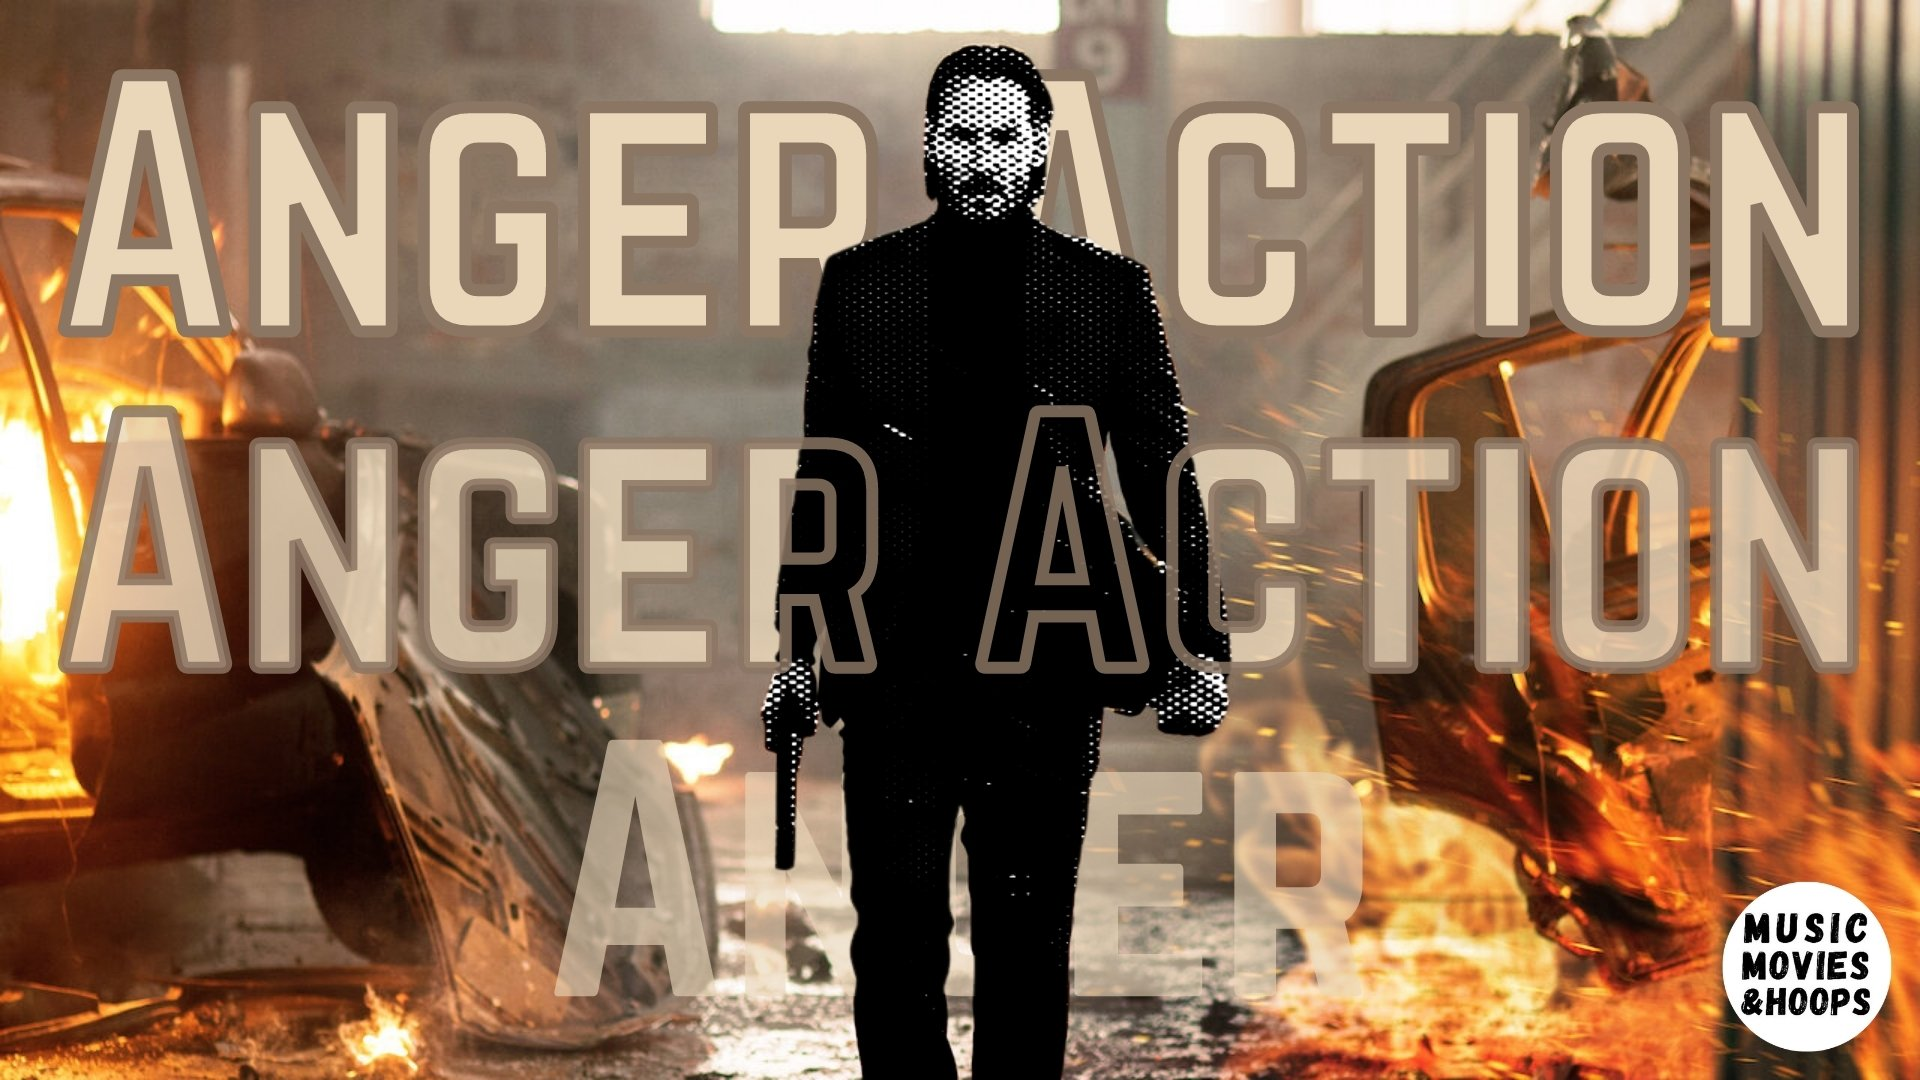 Anger Action: Hollywood's Latest Brooding Crush